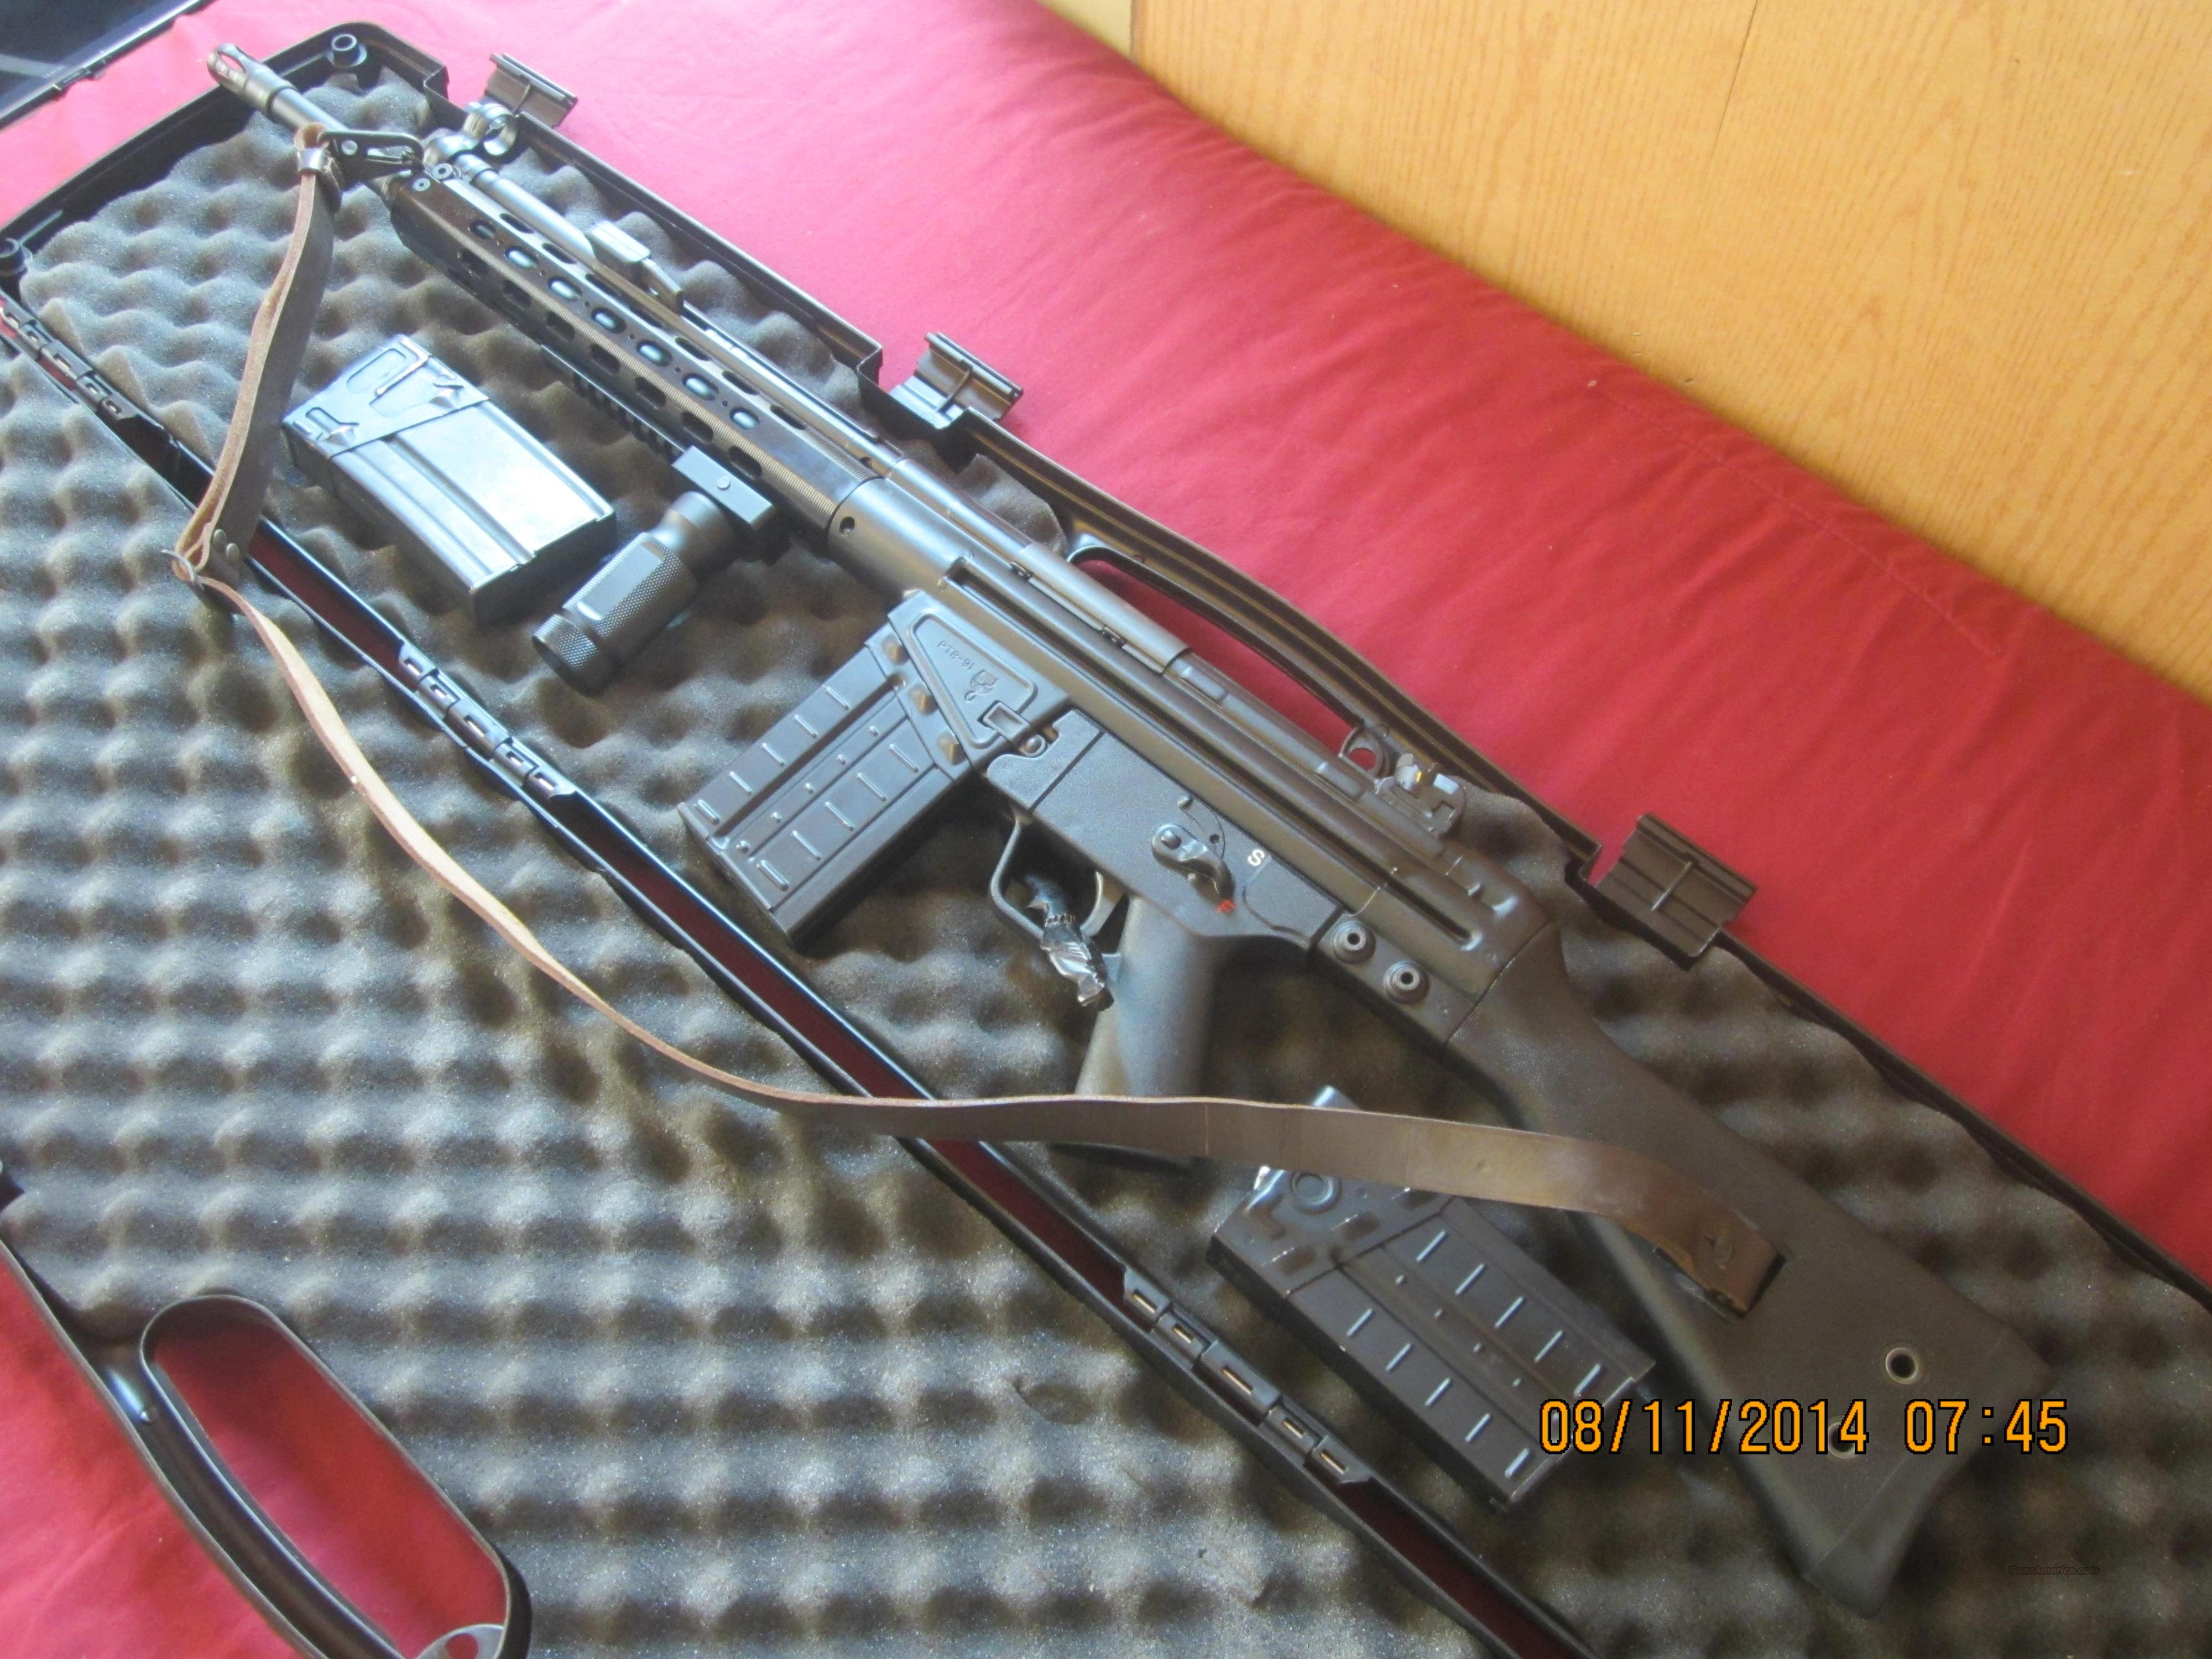 Ptr 91f 308 Hk 91 18 Quot Clone W Extras Price Low For Sale